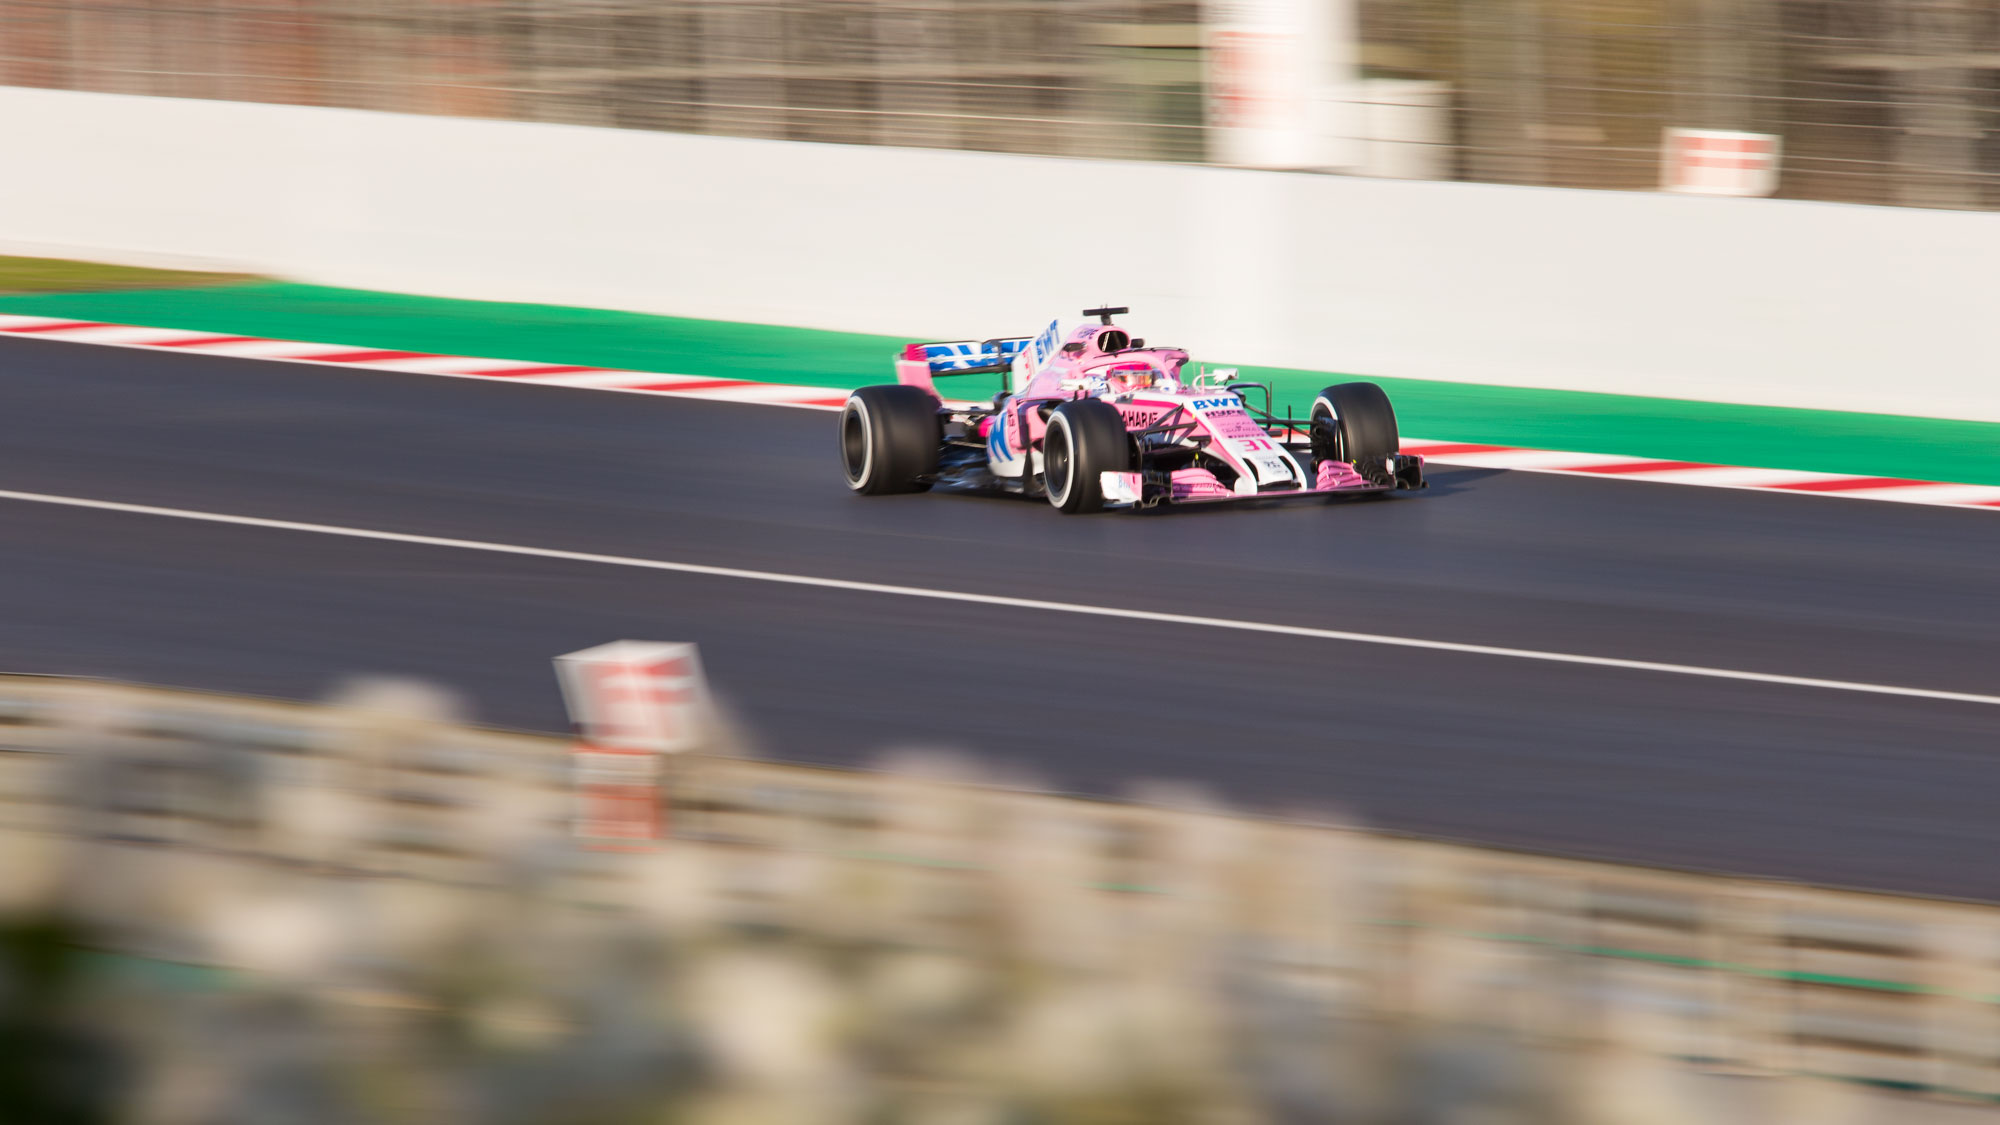 Esteban Ocon, Force India, Formula 1 testing, Barcelona 2018